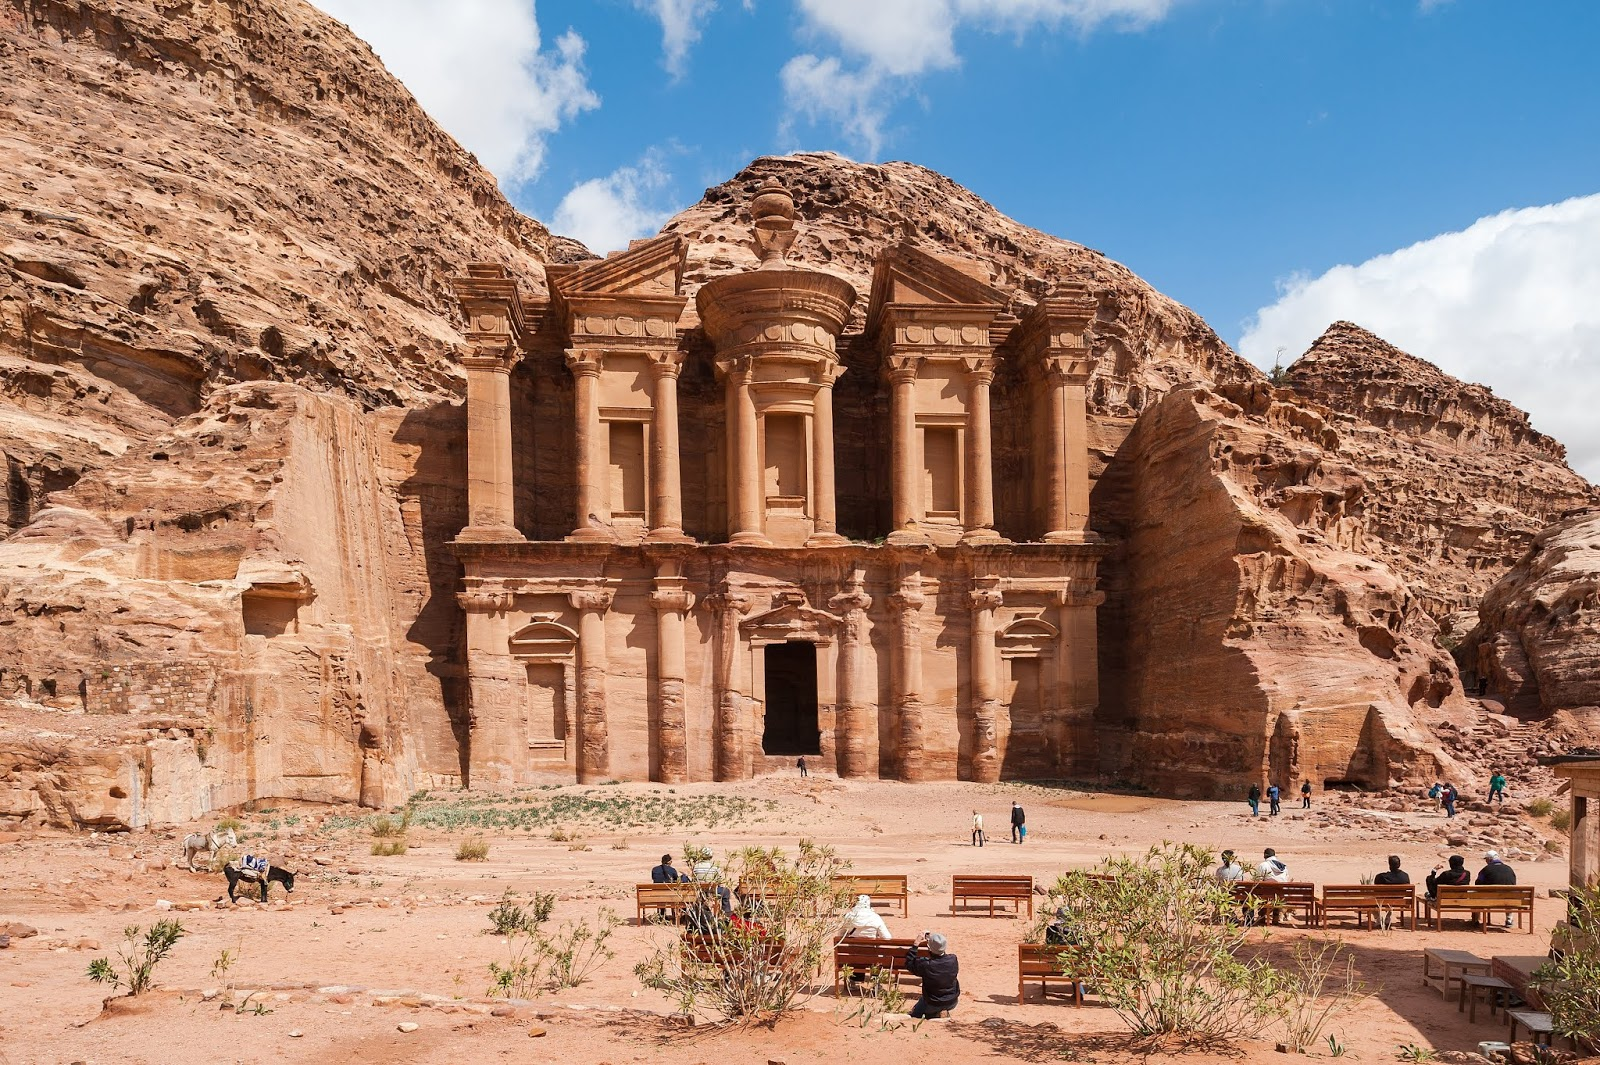 History & Culture - Seven Historical Sights in Jordan